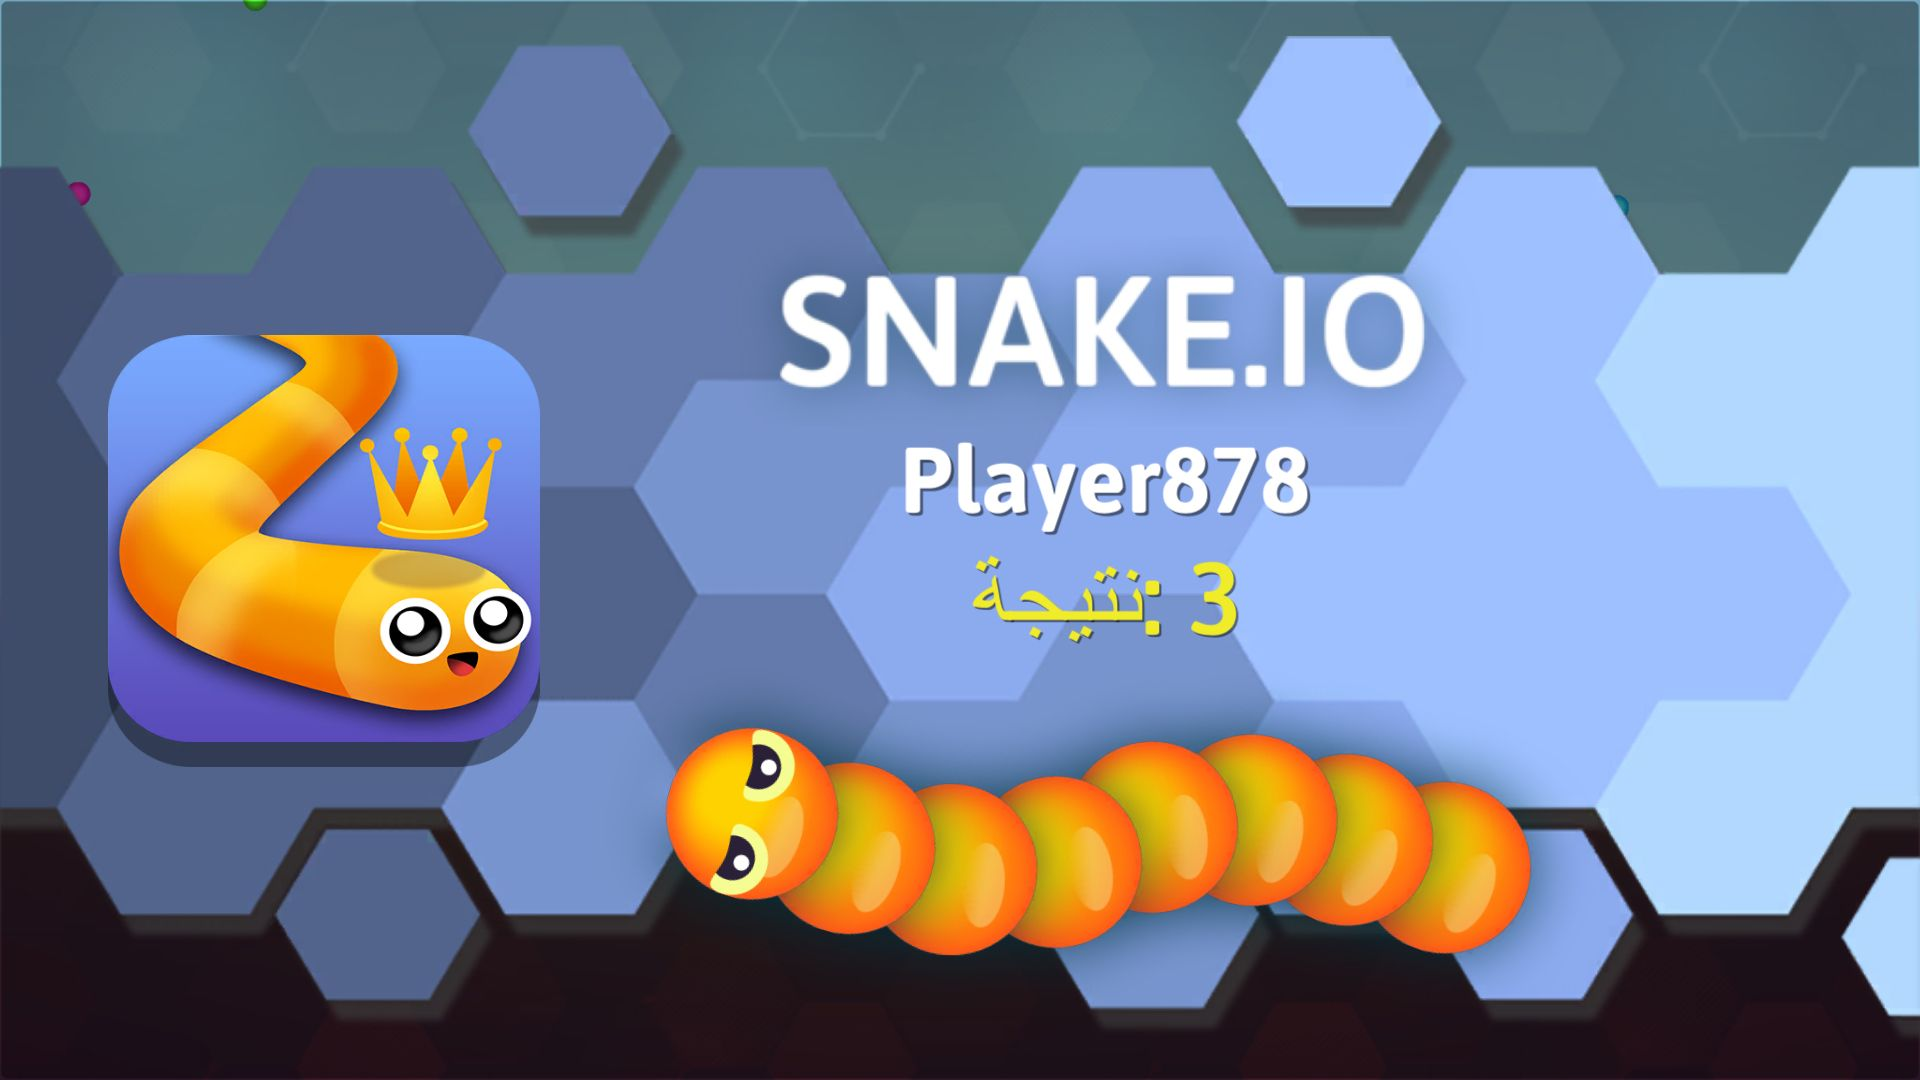 My score on snakeio ﺔﺠﻴﺘﻧ 3 in 2020 Paper crafts